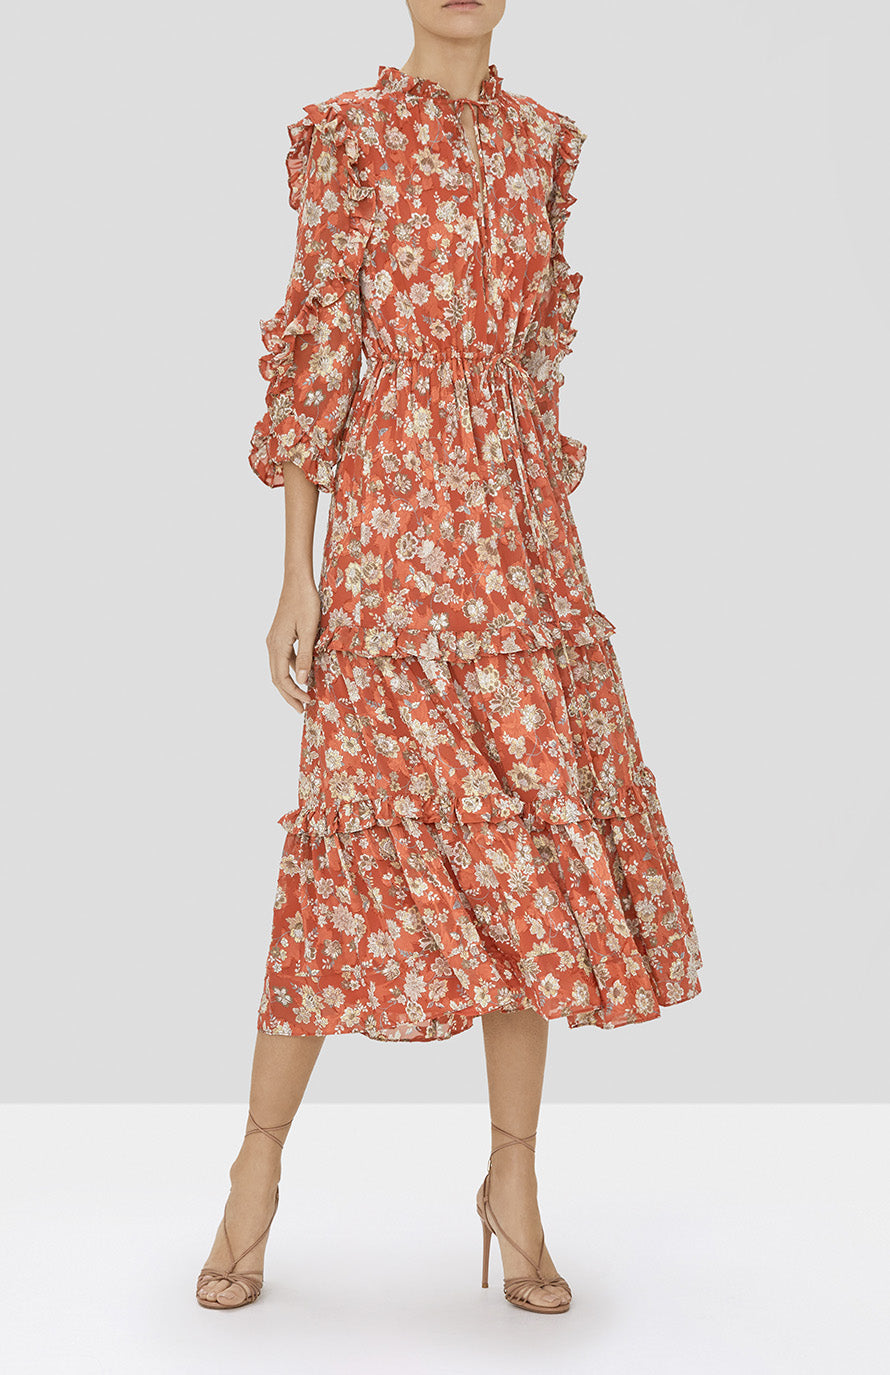 Alexis Auja Dress in Saffron Floral from our Pre-Spring 2020 Ready To Wear Collection - Rear View